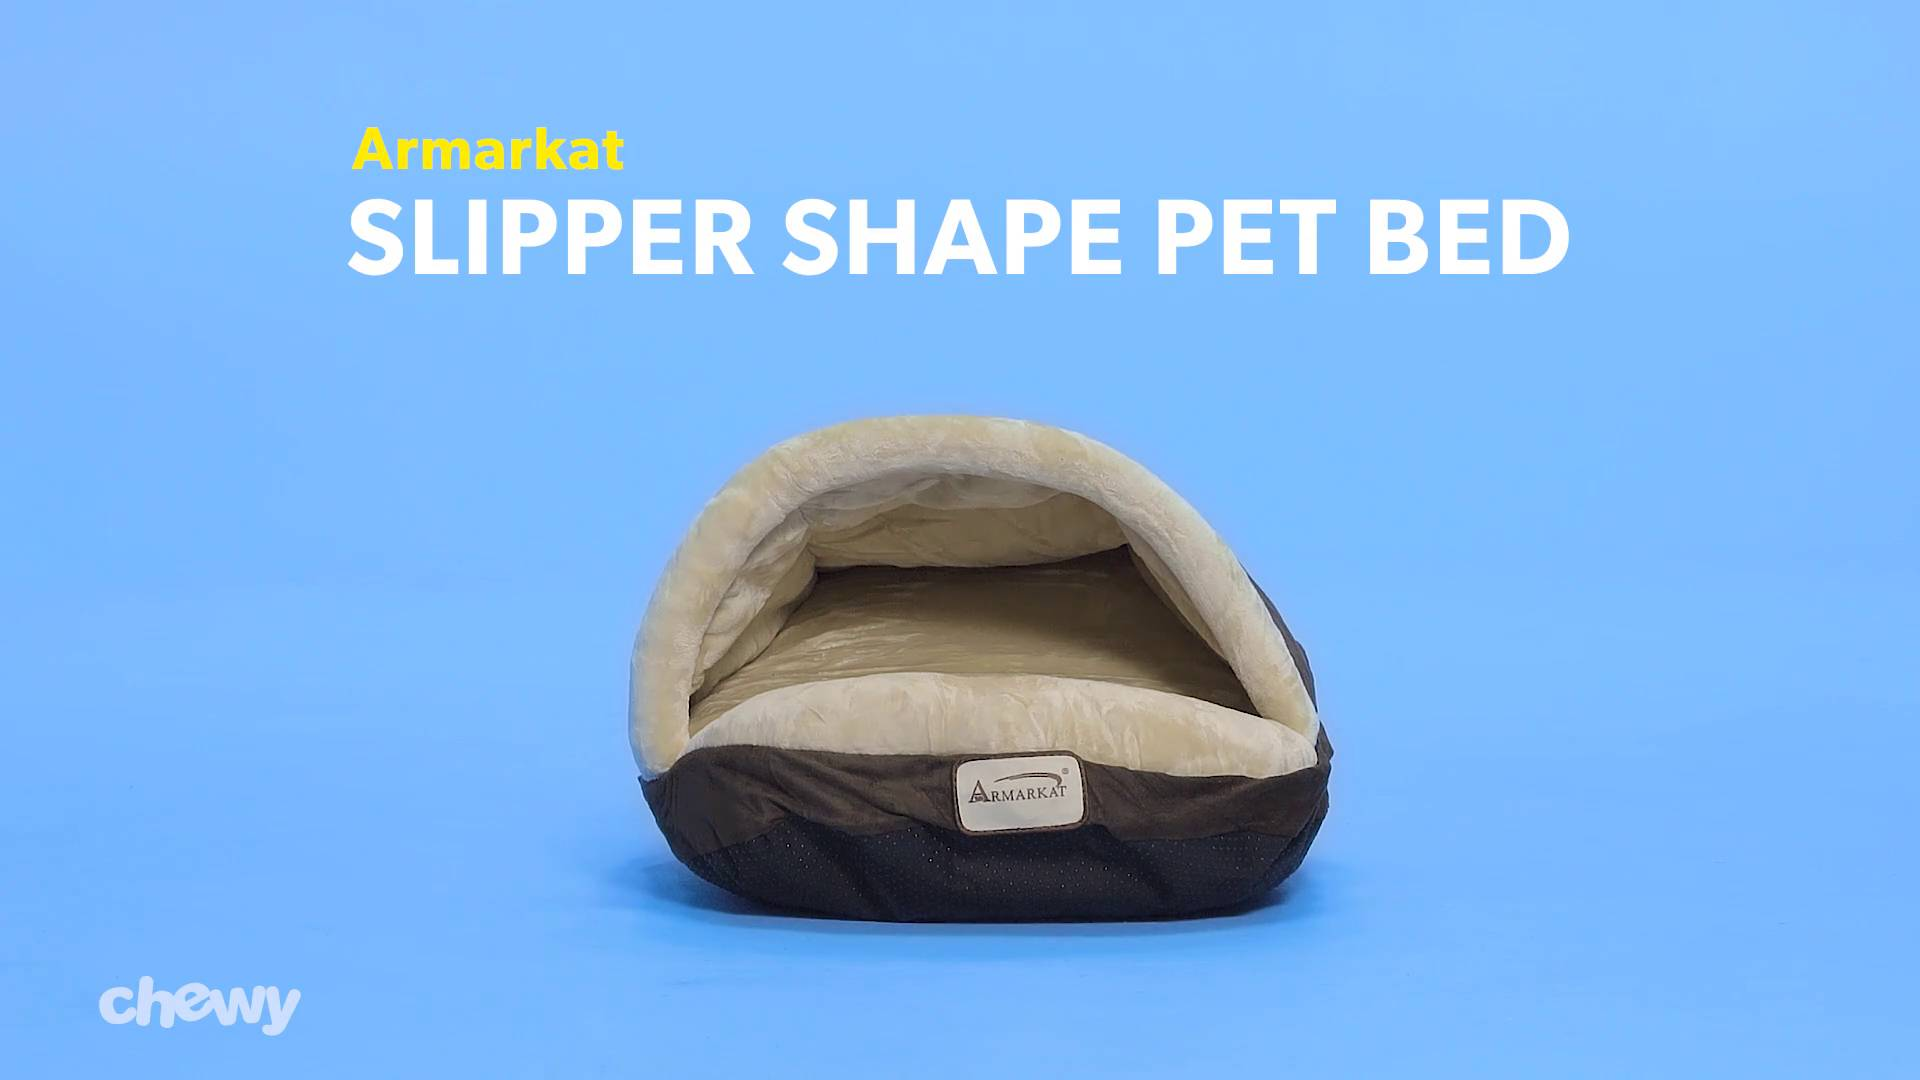 Communication on this topic: Armarkat Slipper Shape Pet Bed, MochaBeige, armarkat-slipper-shape-pet-bed-mochabeige/